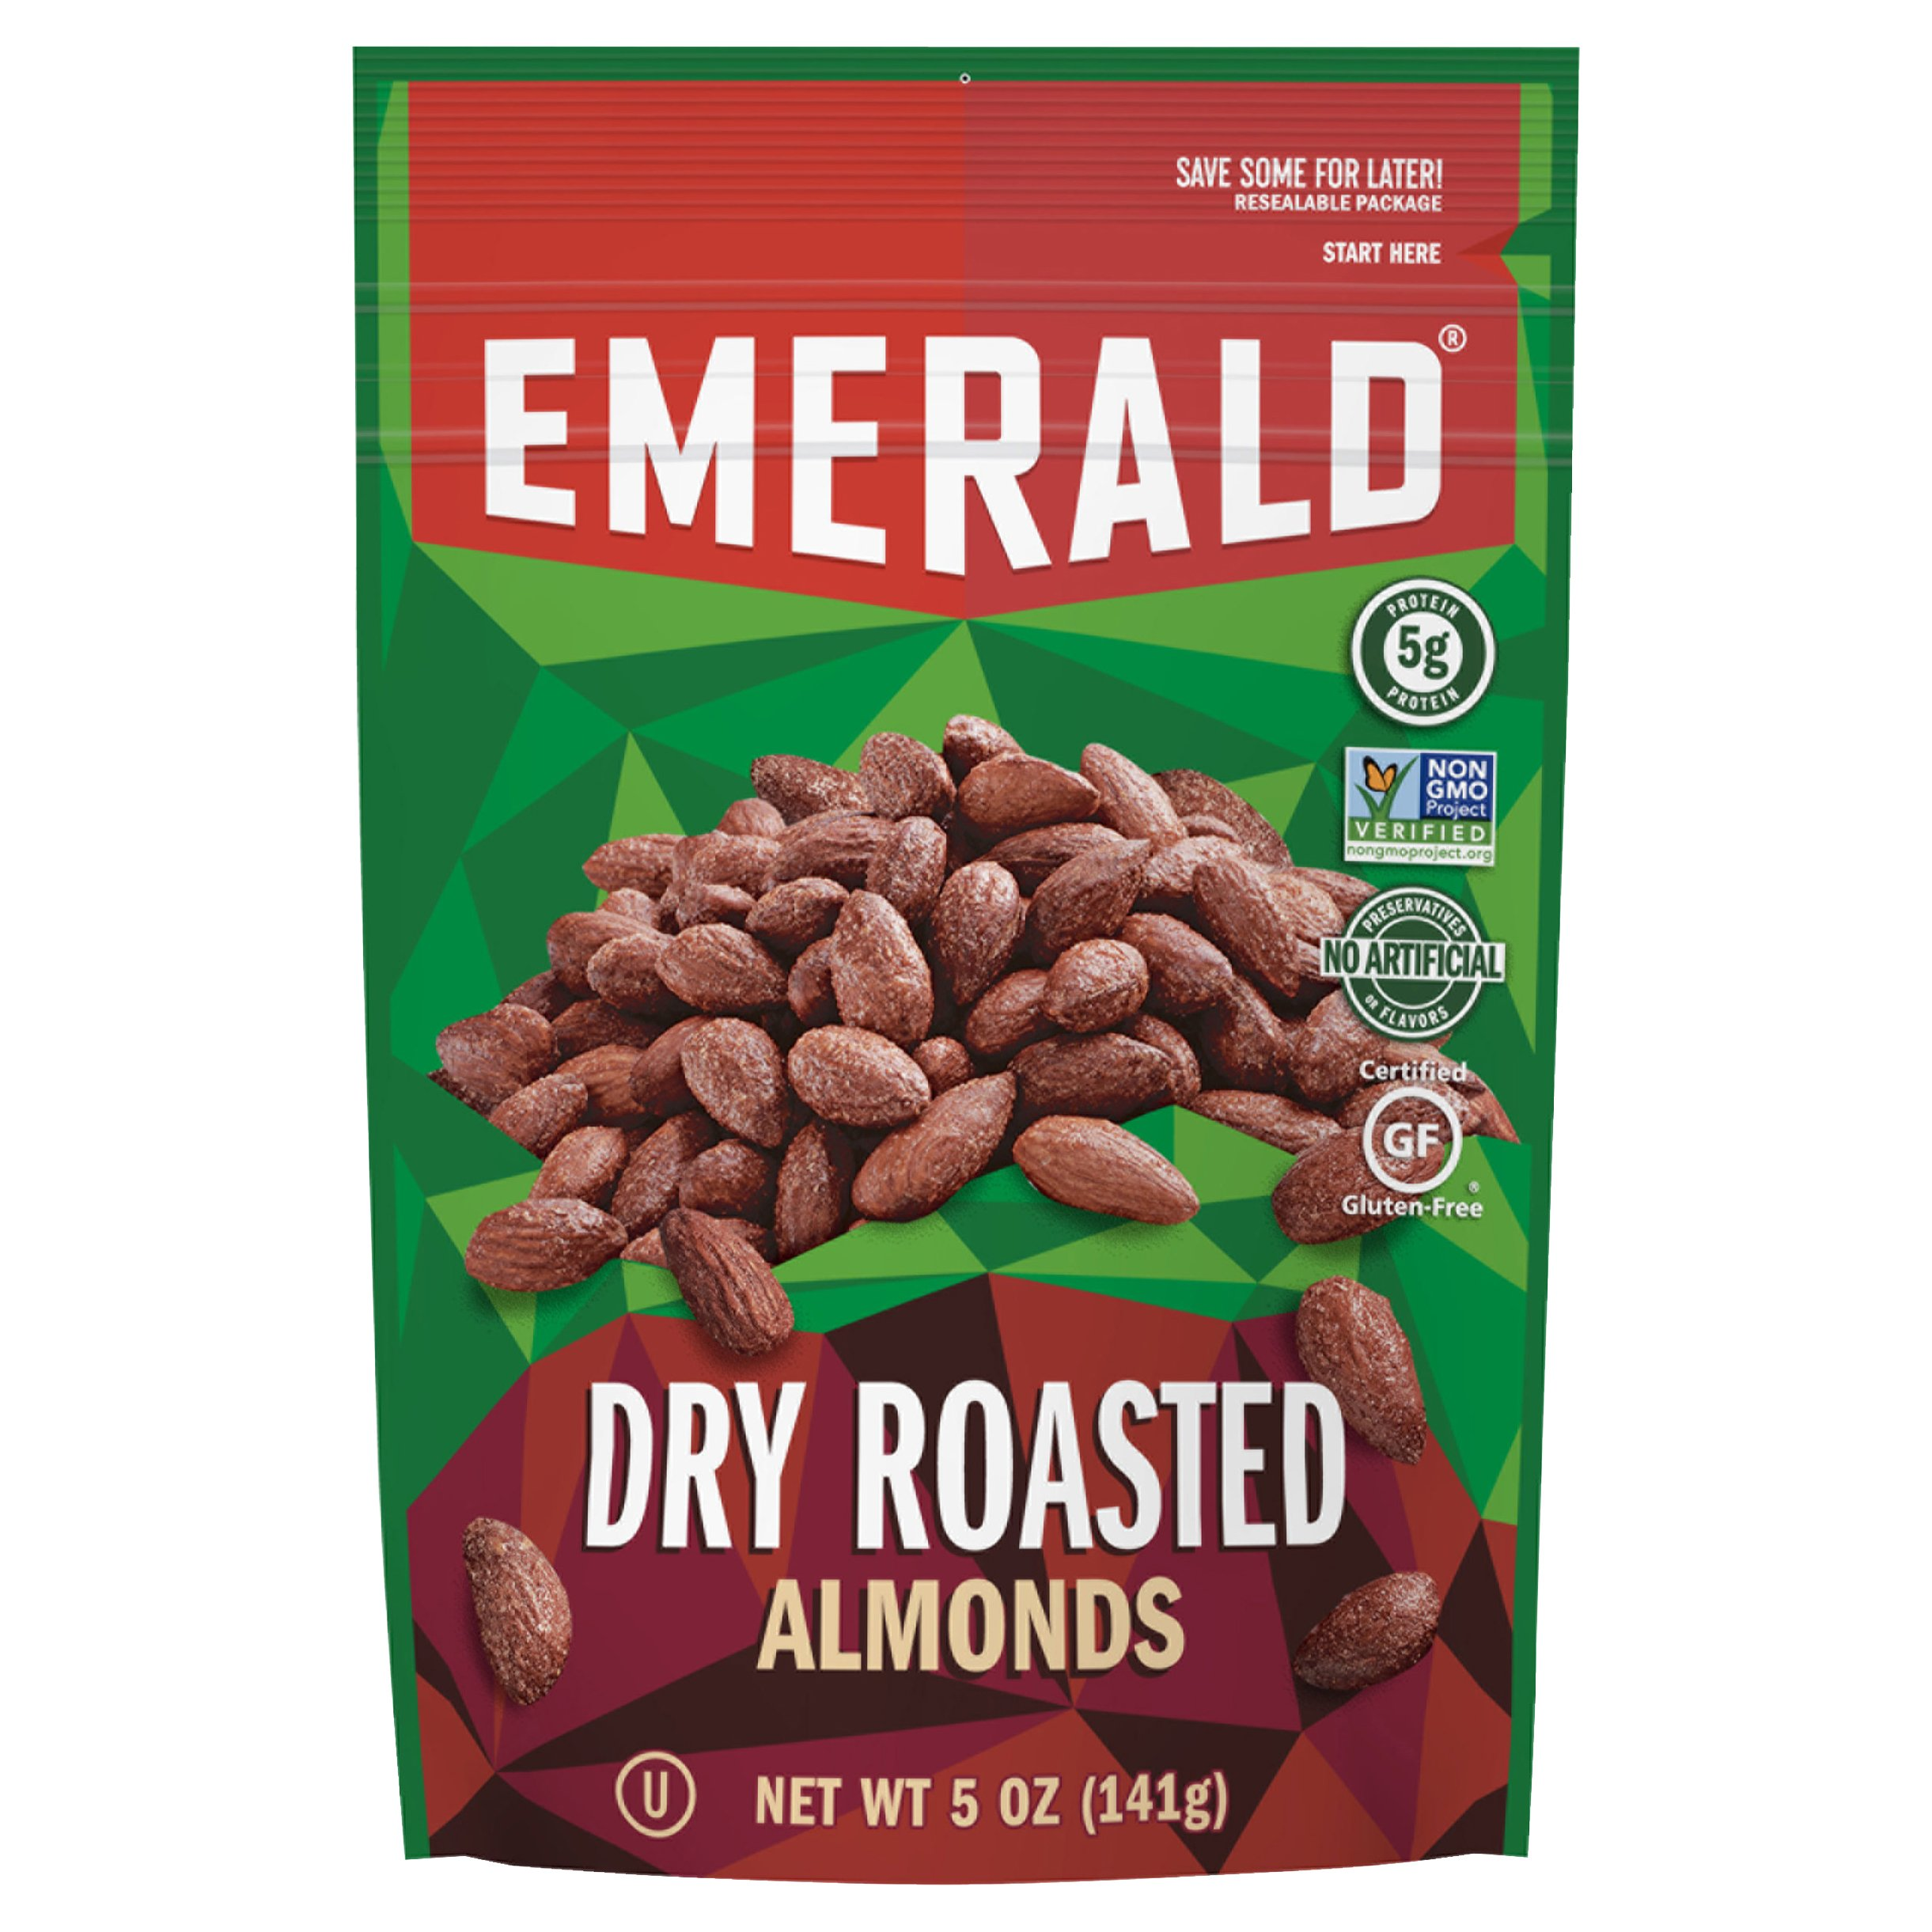 Emerald Dry Roasted Almonds 5OZ 6-Pack